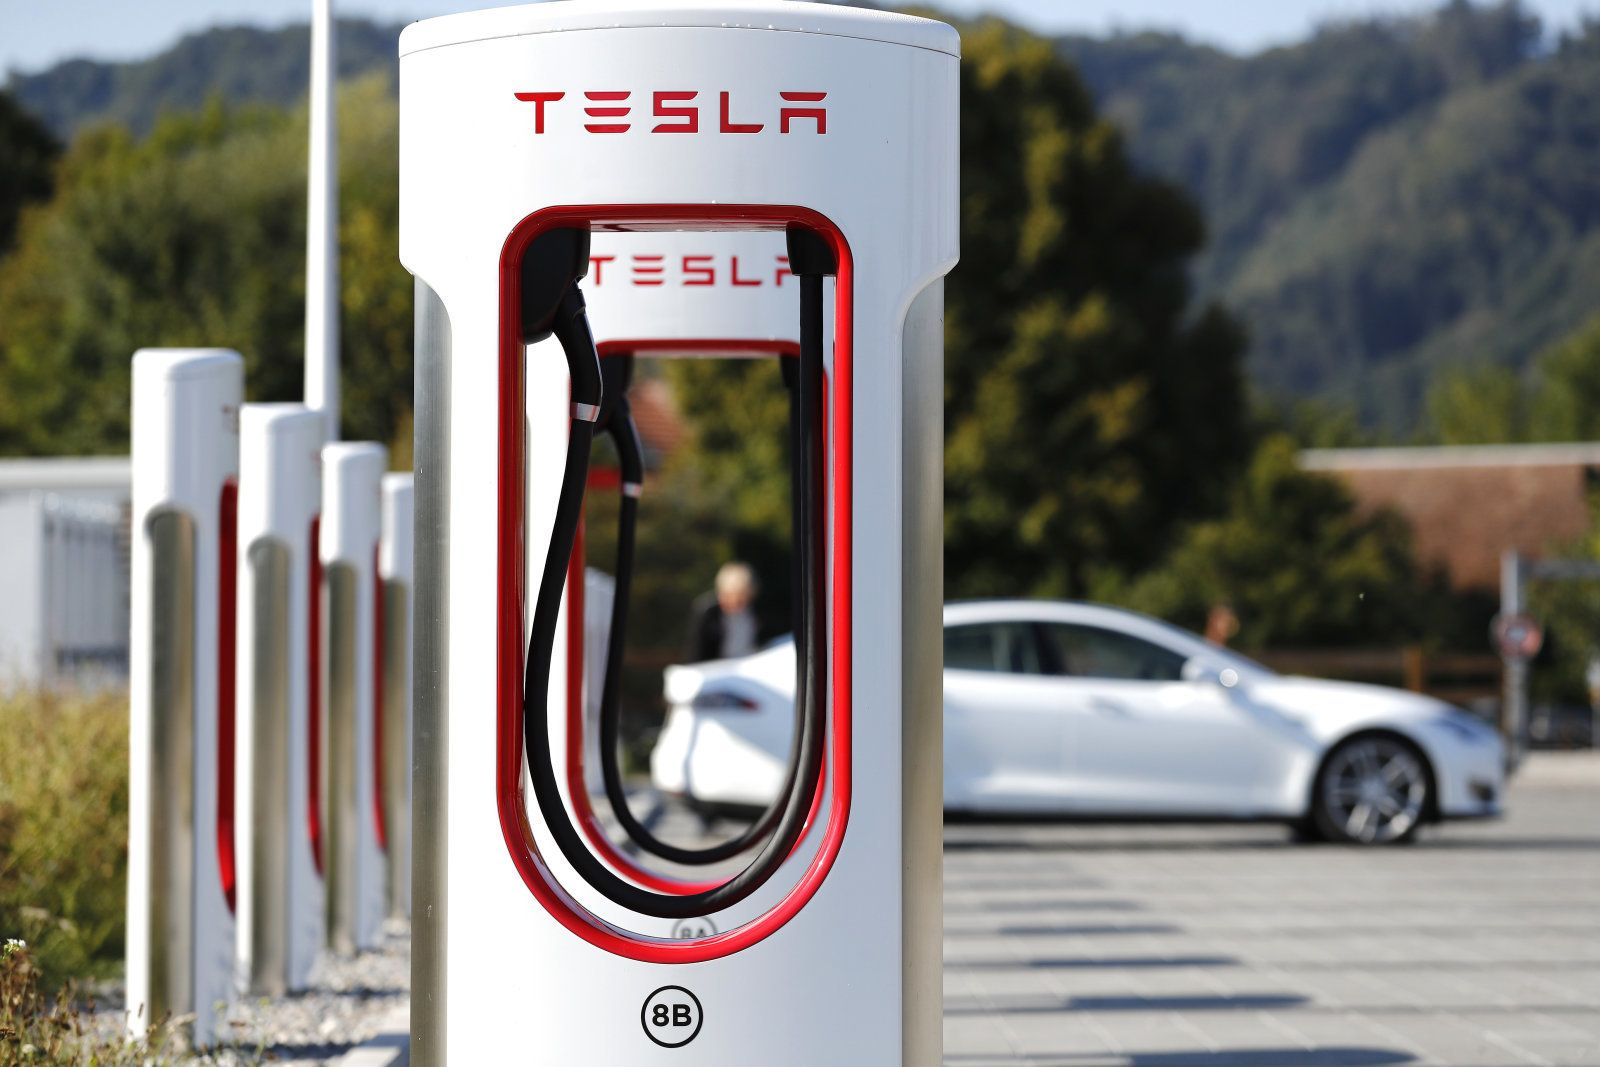 Tesla Plans To Roll Out Its Next Gen Supercharger In 2019 Tesla Supercharger Power Grid